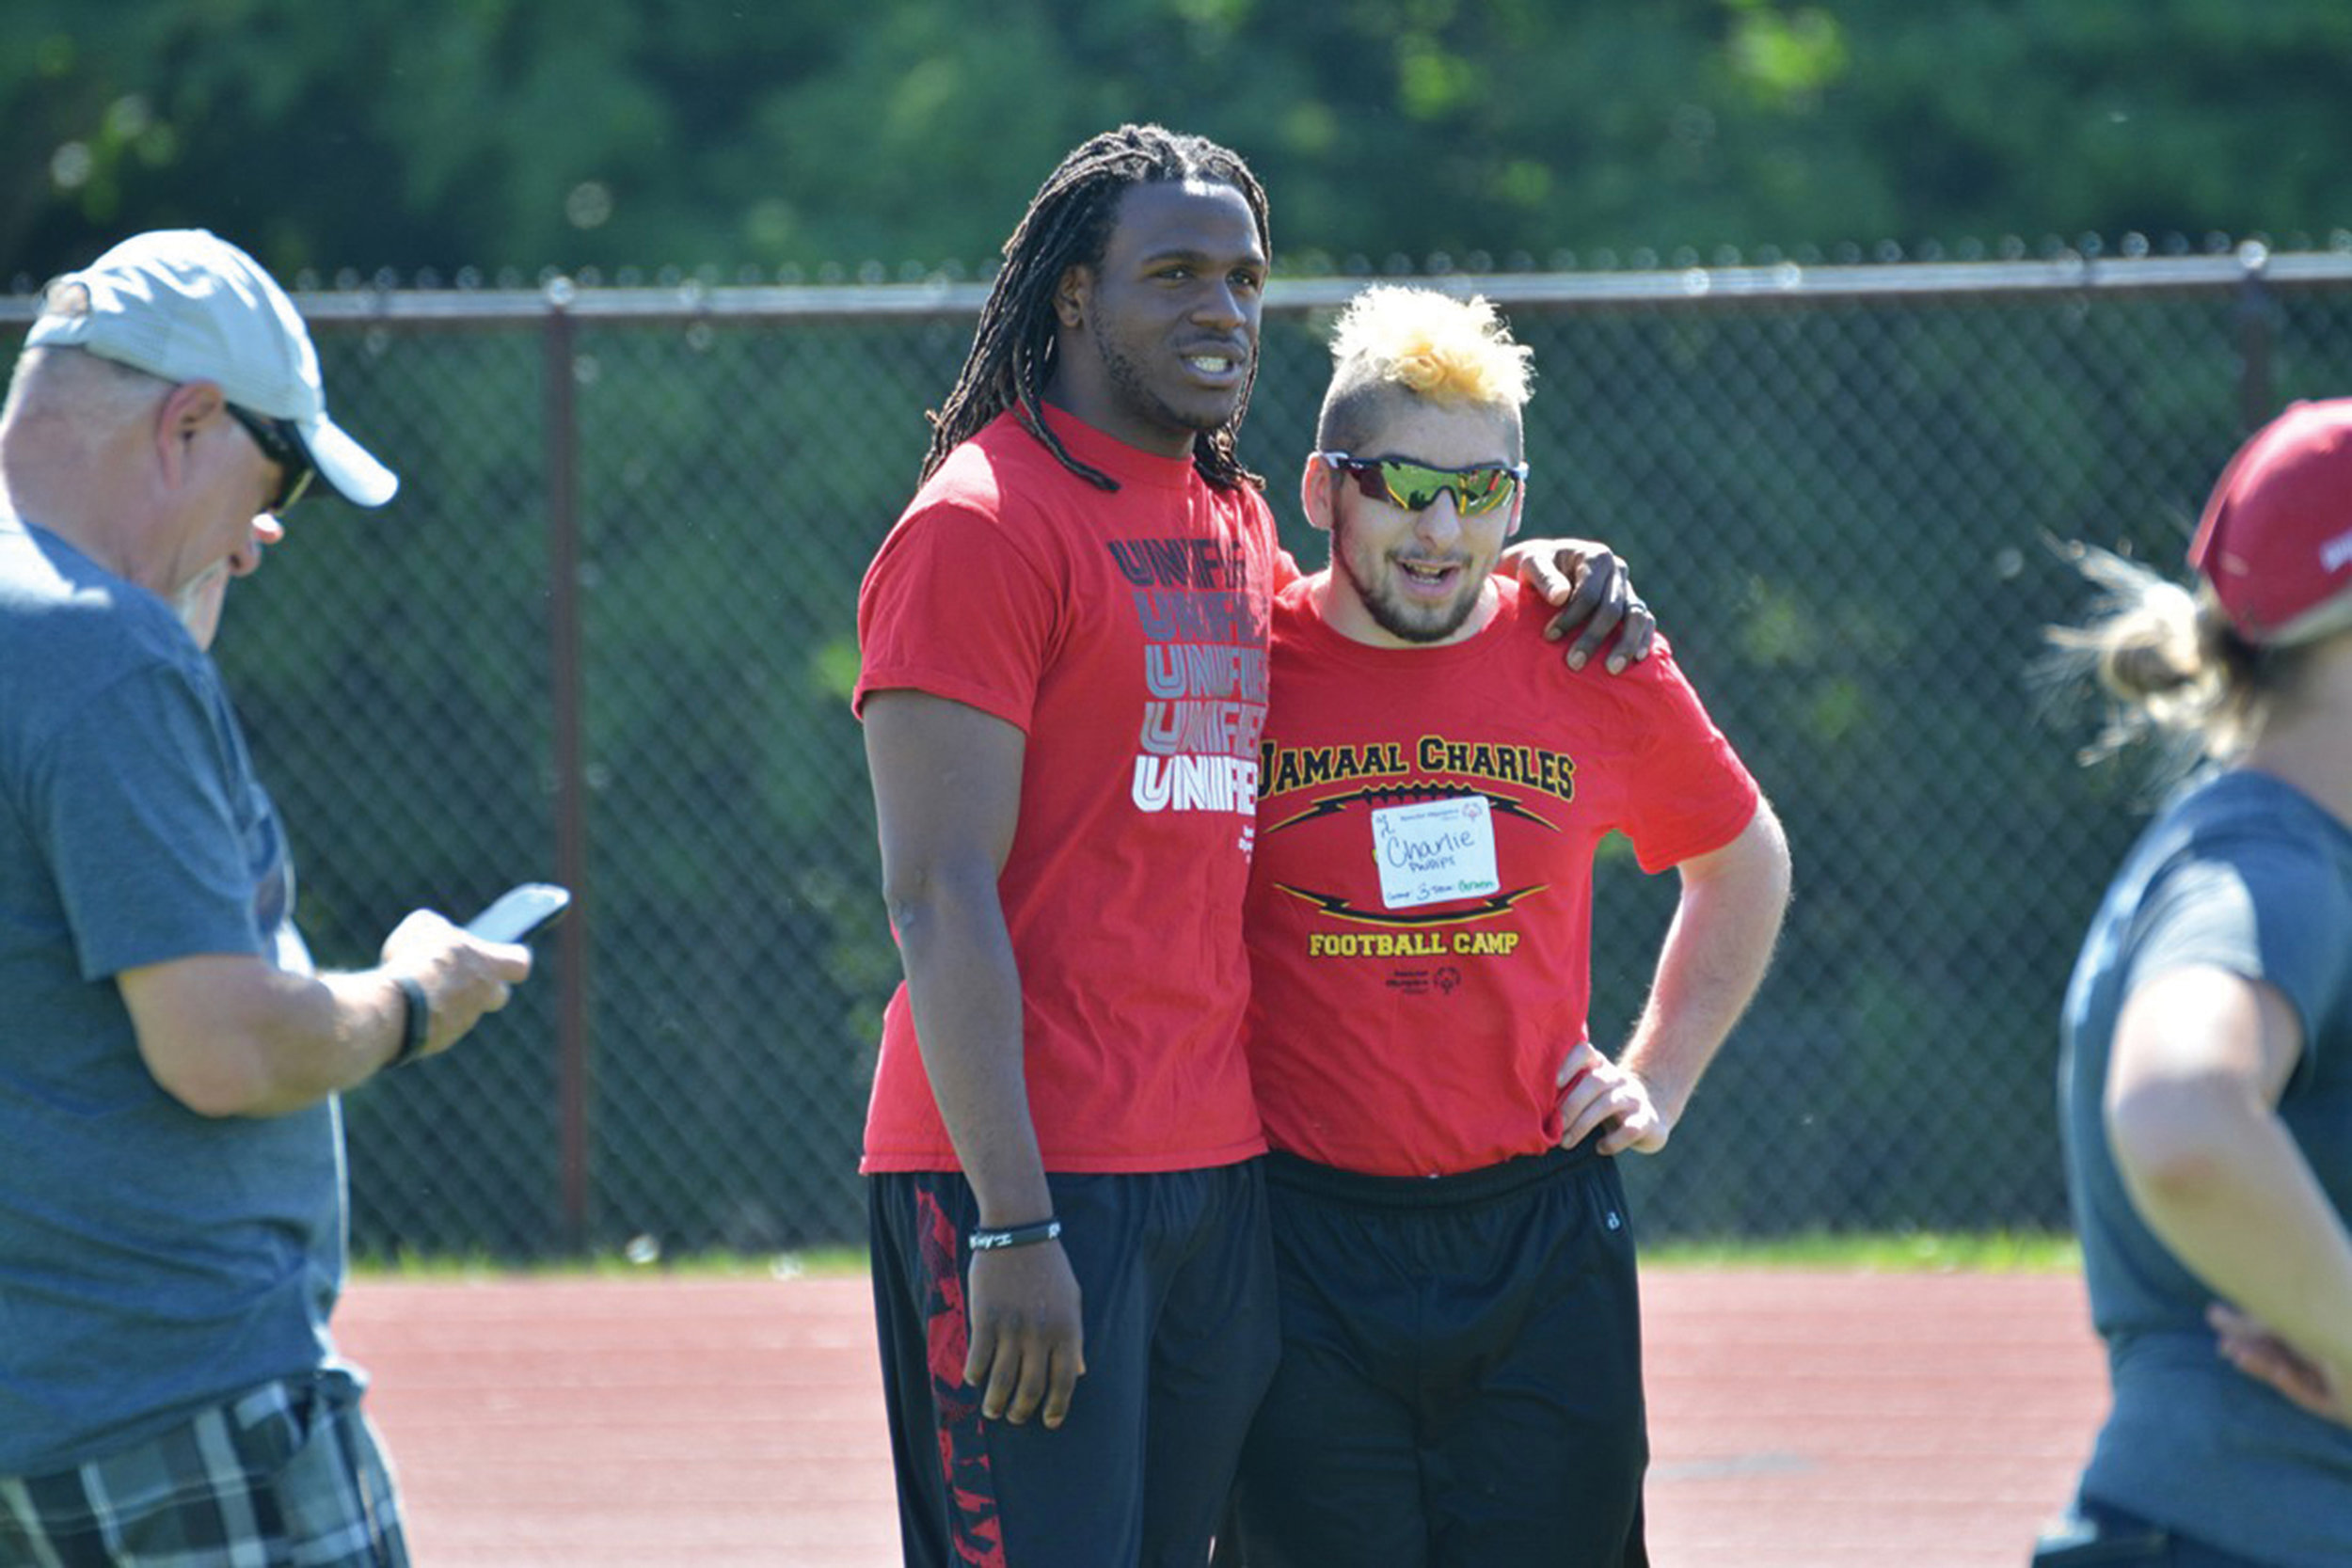 Jamaal Charles Unified Flag Football Clinic